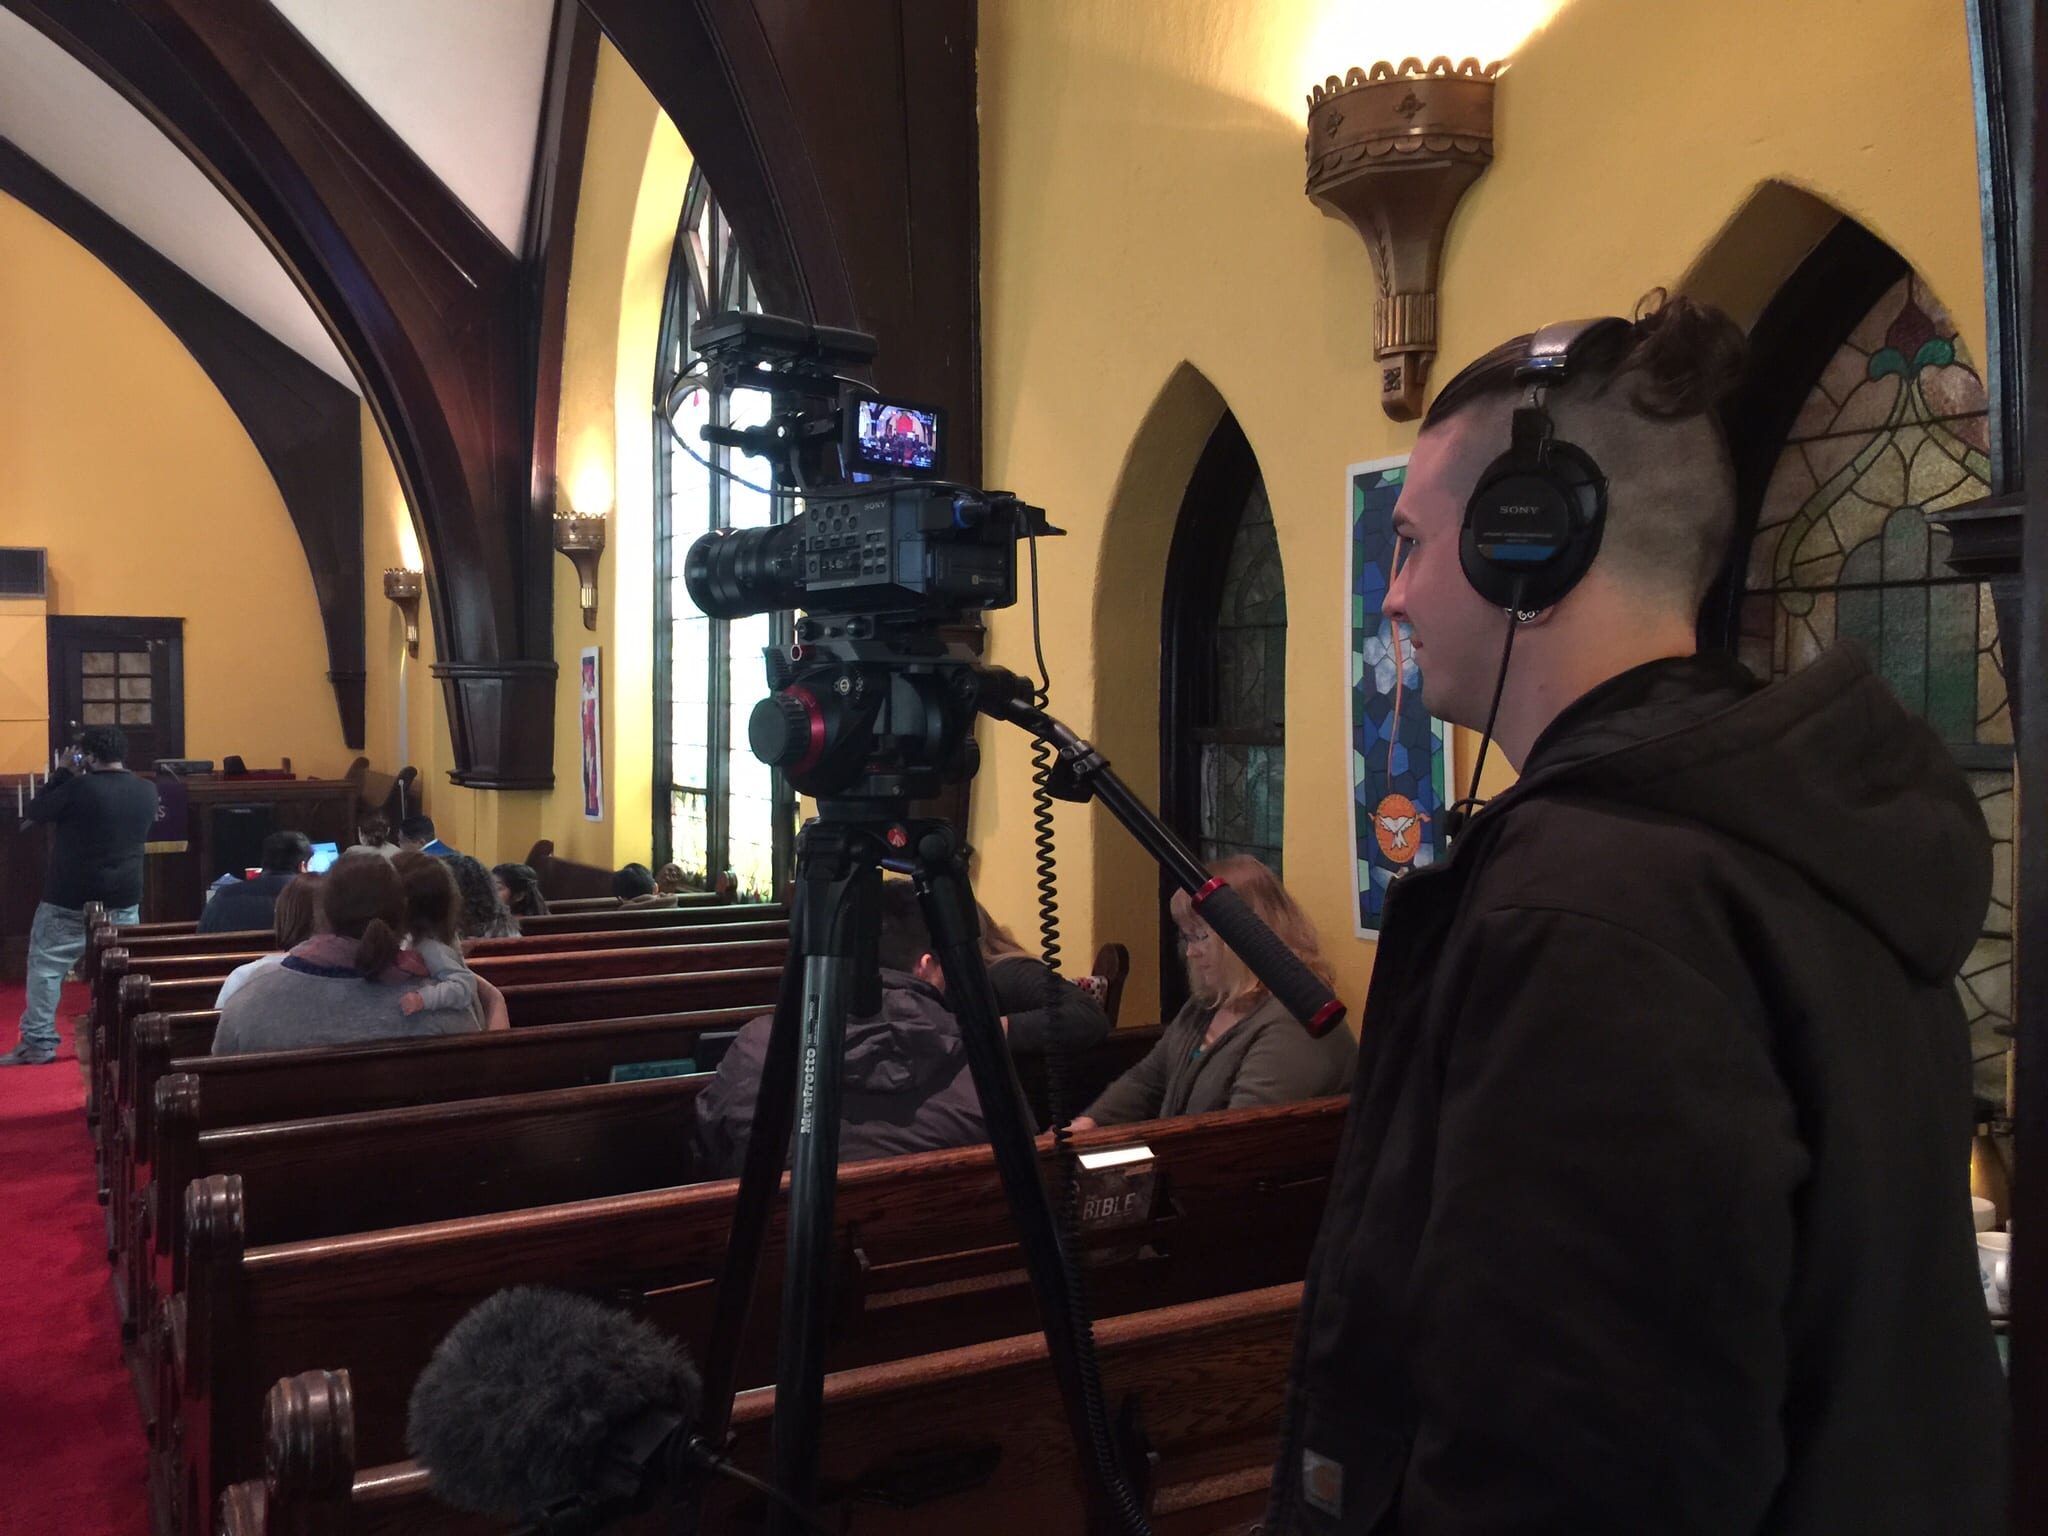 A cameraman in a church